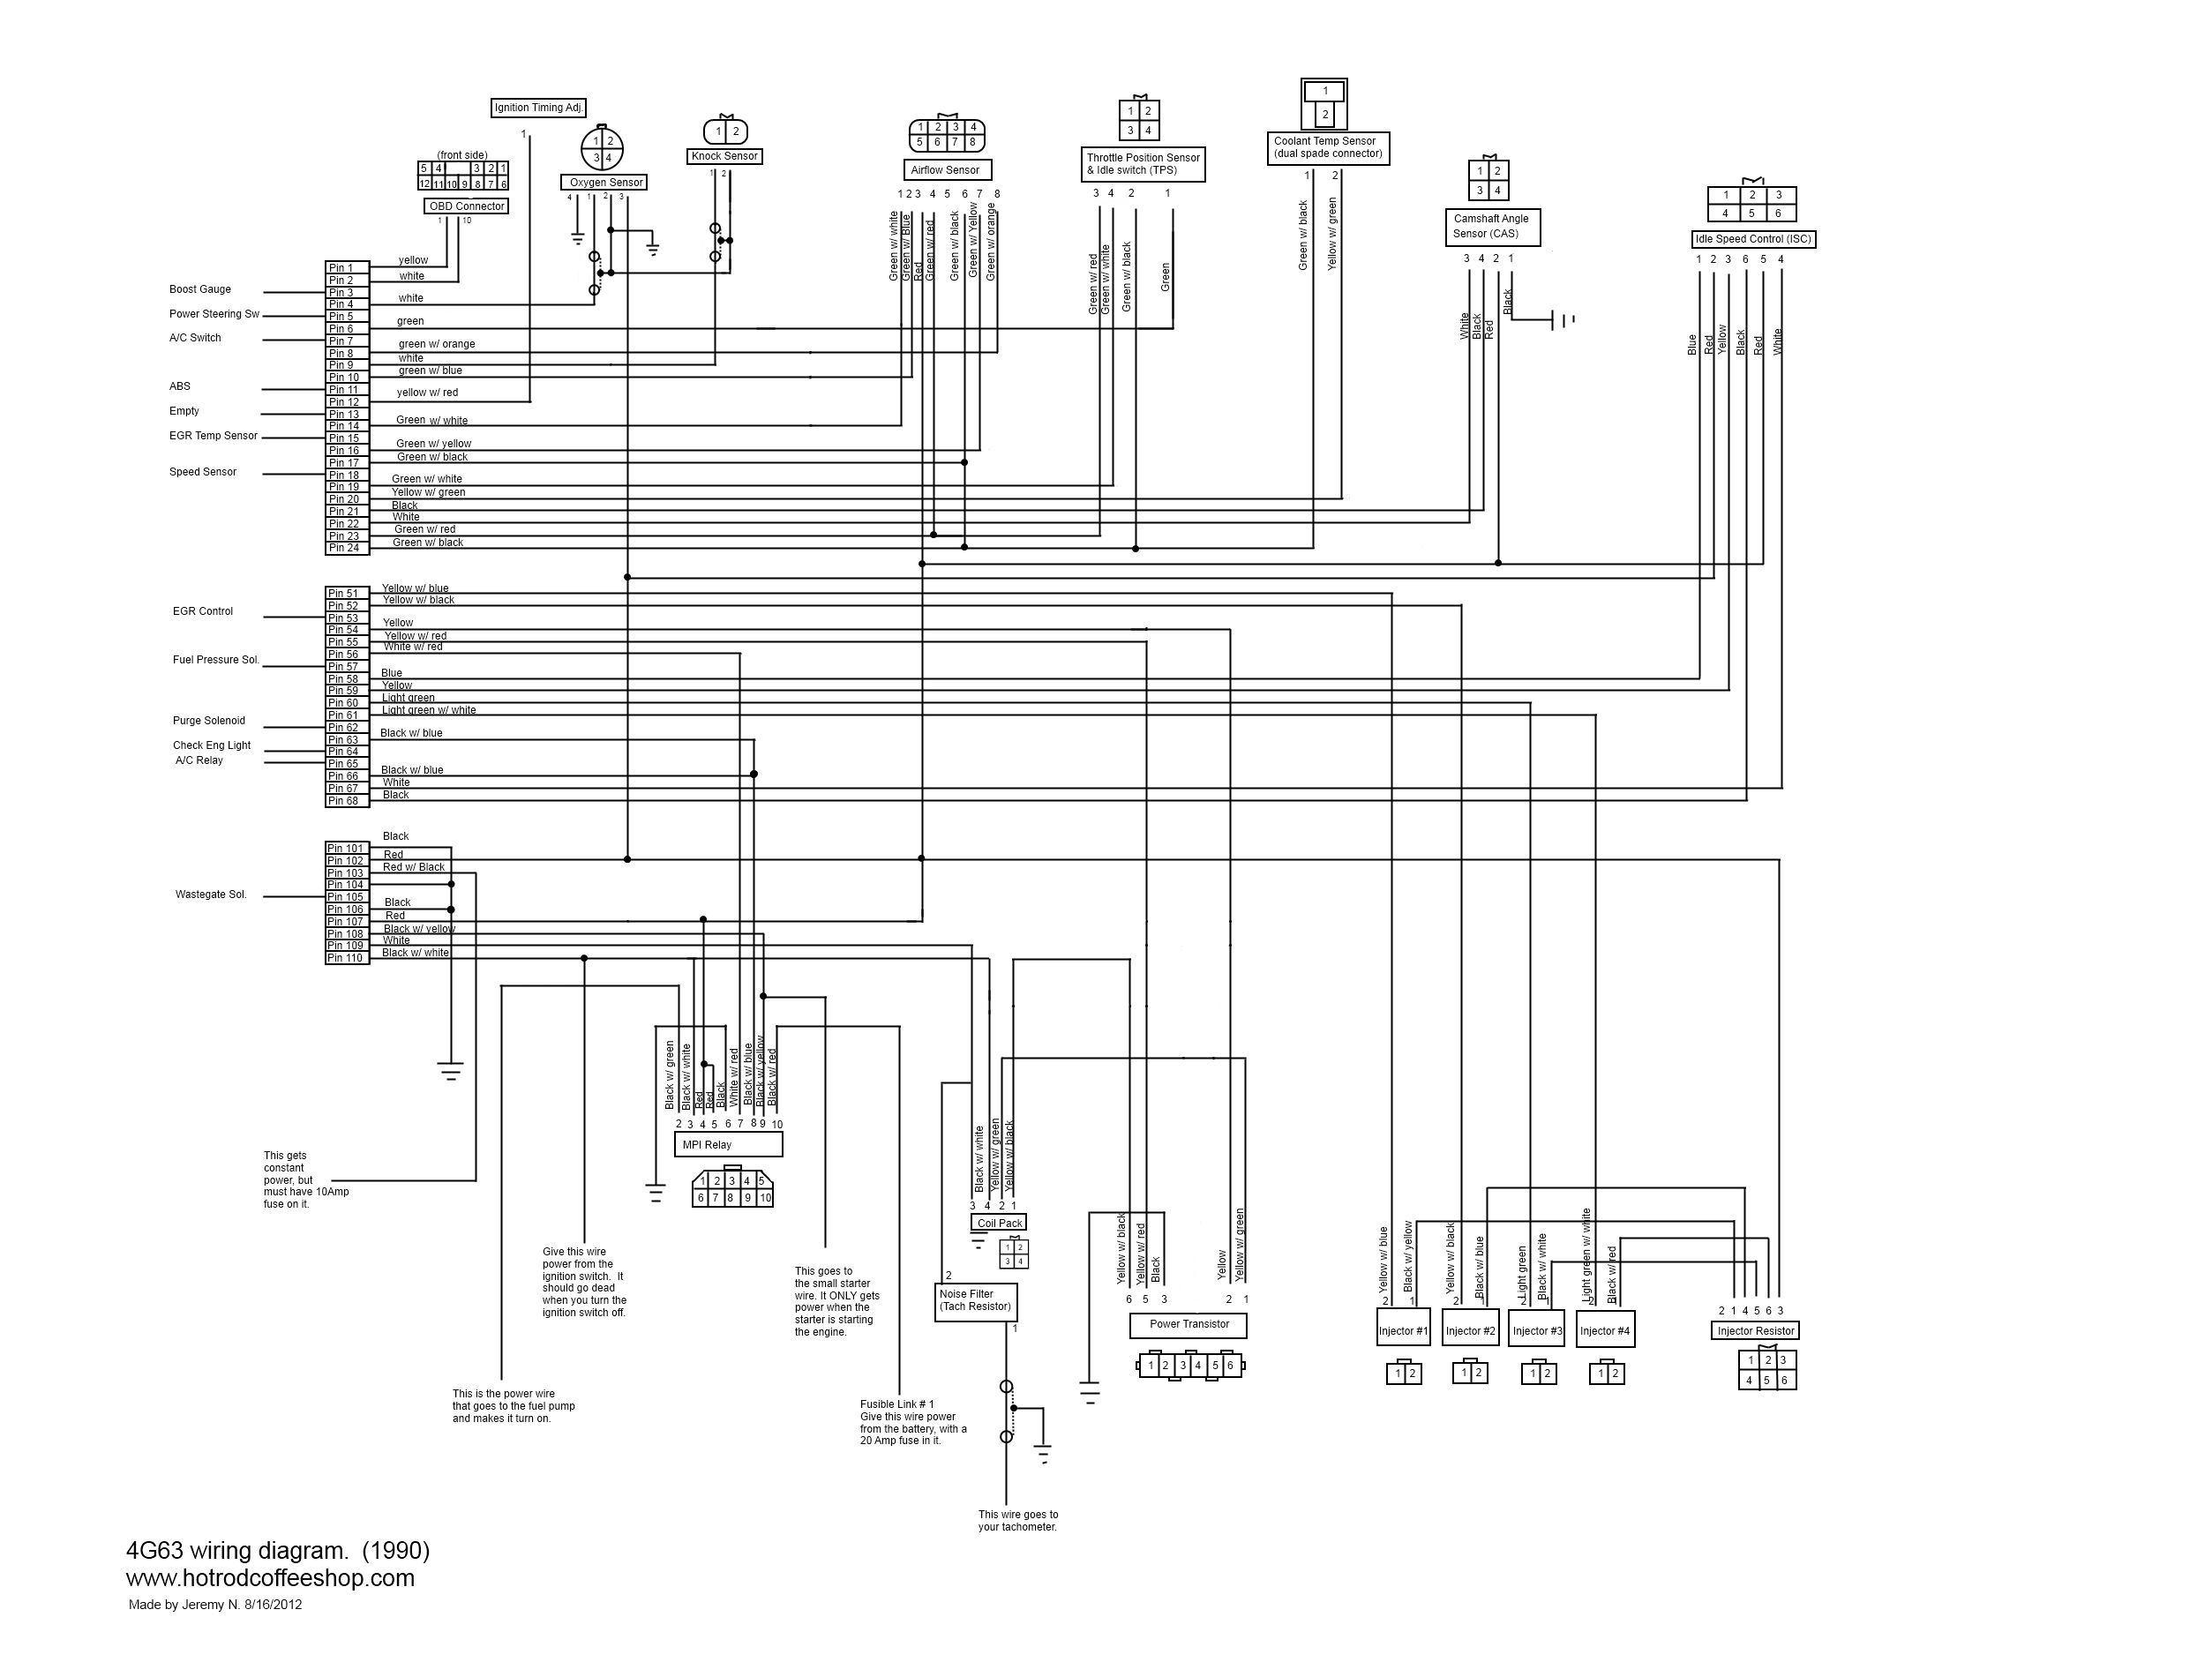 G wiring diagrams schematics for engine swaps